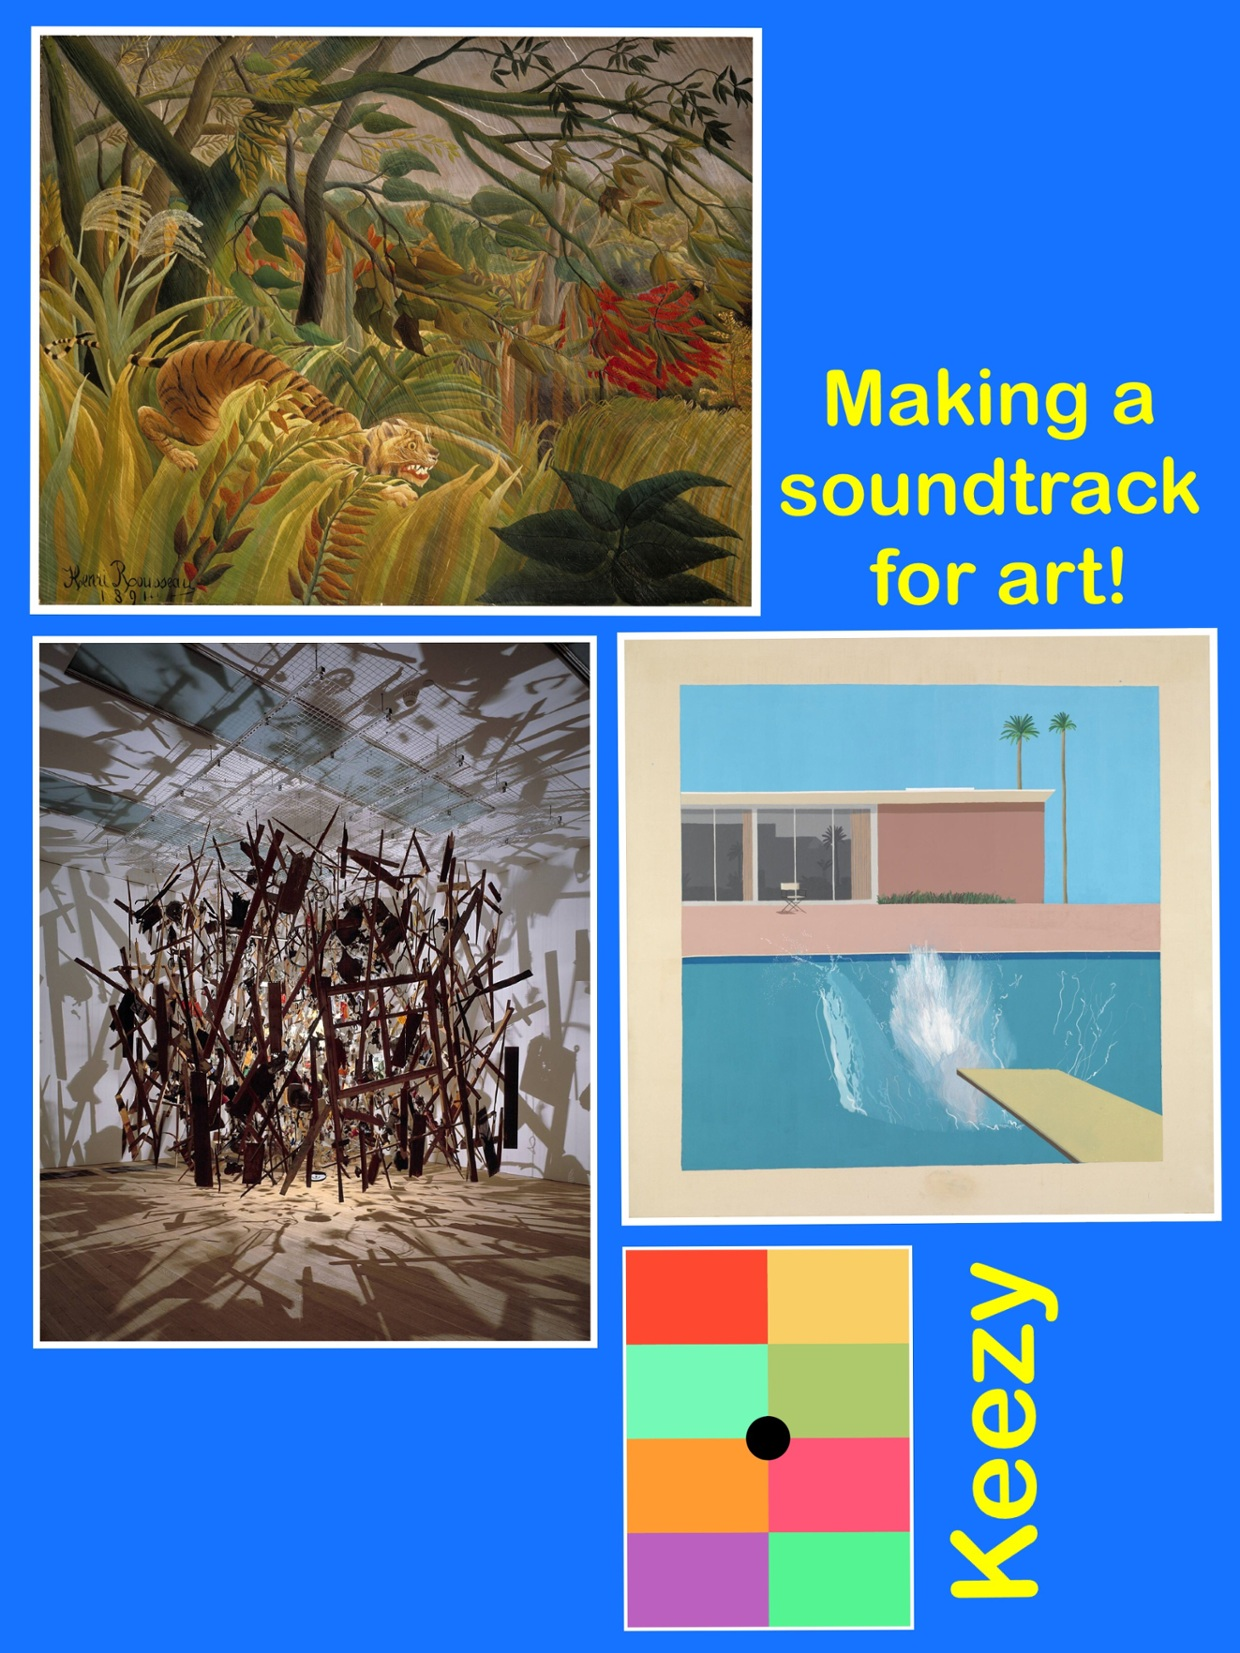 Making sounds for art!